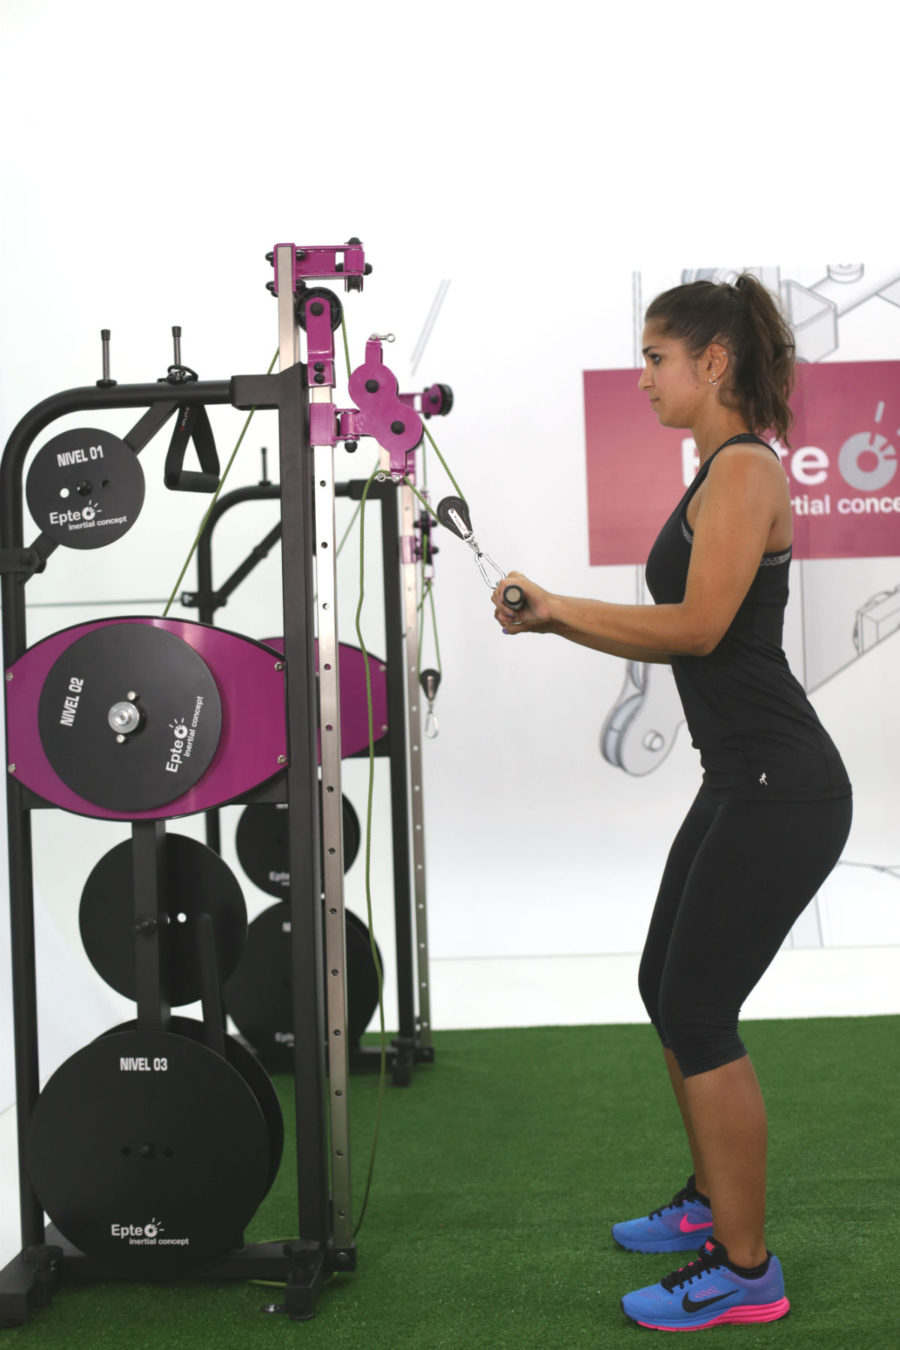 epte-inertial-concept-functional-training